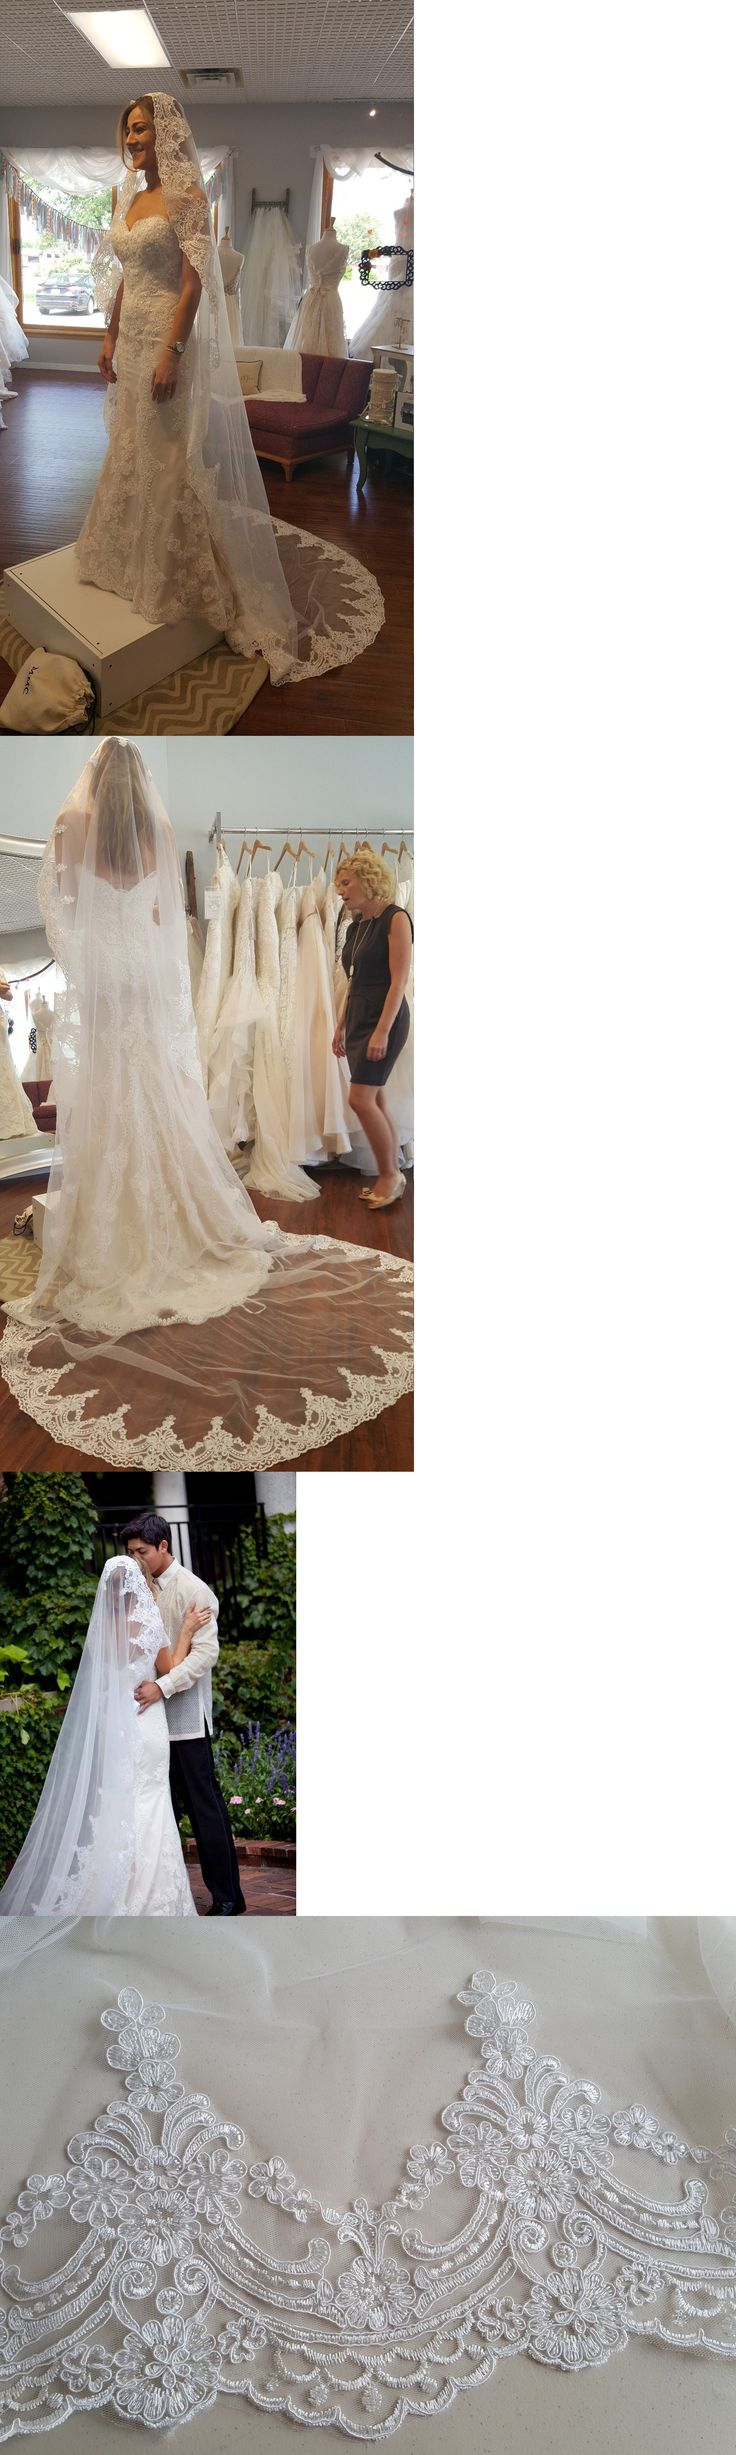 Veils 15719: Bridal Mantilla Cathedral Lace Veil With Comb White Or Light Ivory -> BUY IT NOW ONLY: $129.99 on eBay!